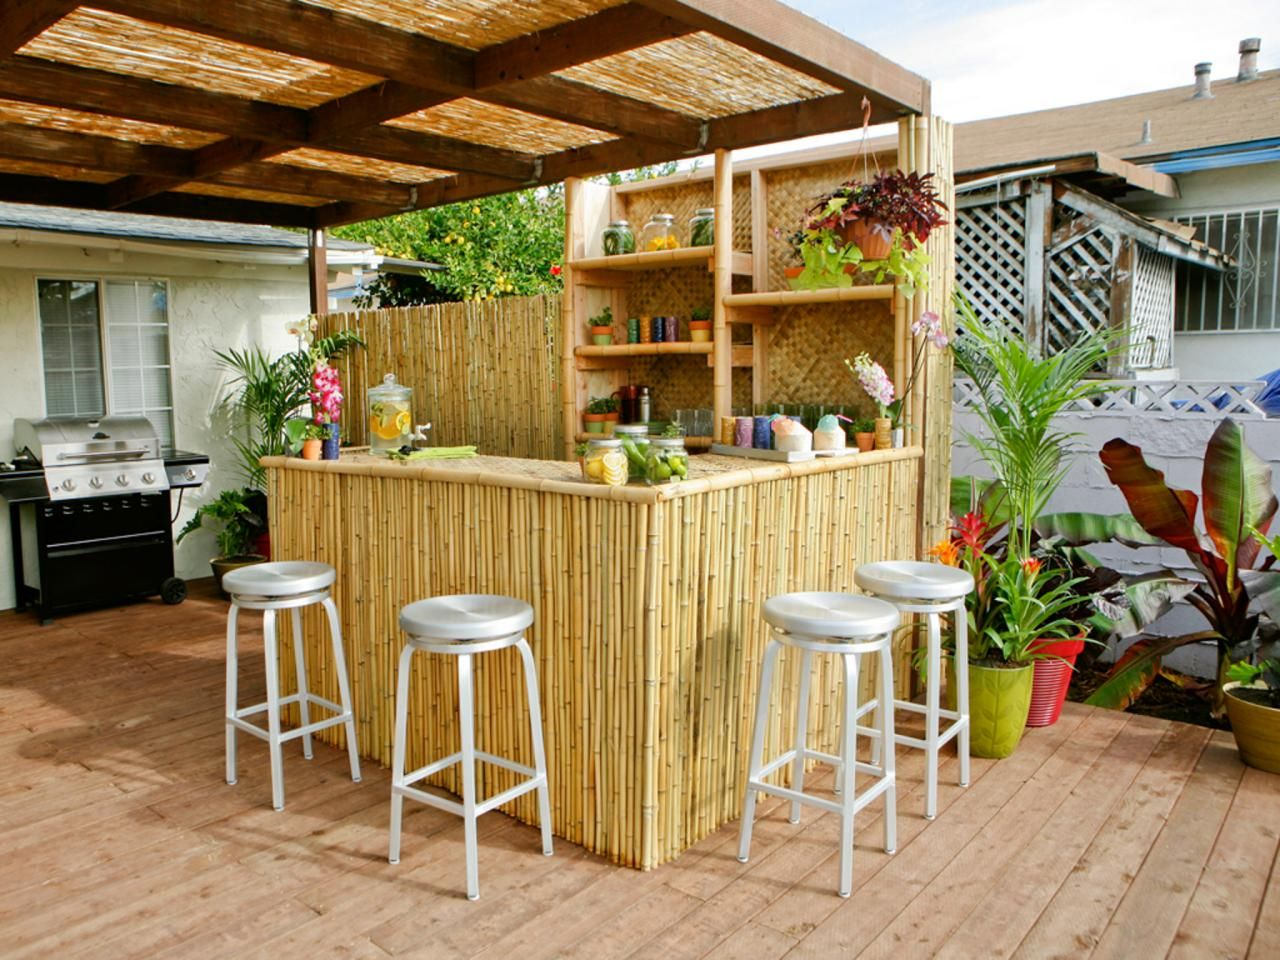 Outdoor bbq and bar ideas - Hgtv Com Has Inspirational Pictures Ideas And Expert Tips For Outdoor Kitchen Bars With